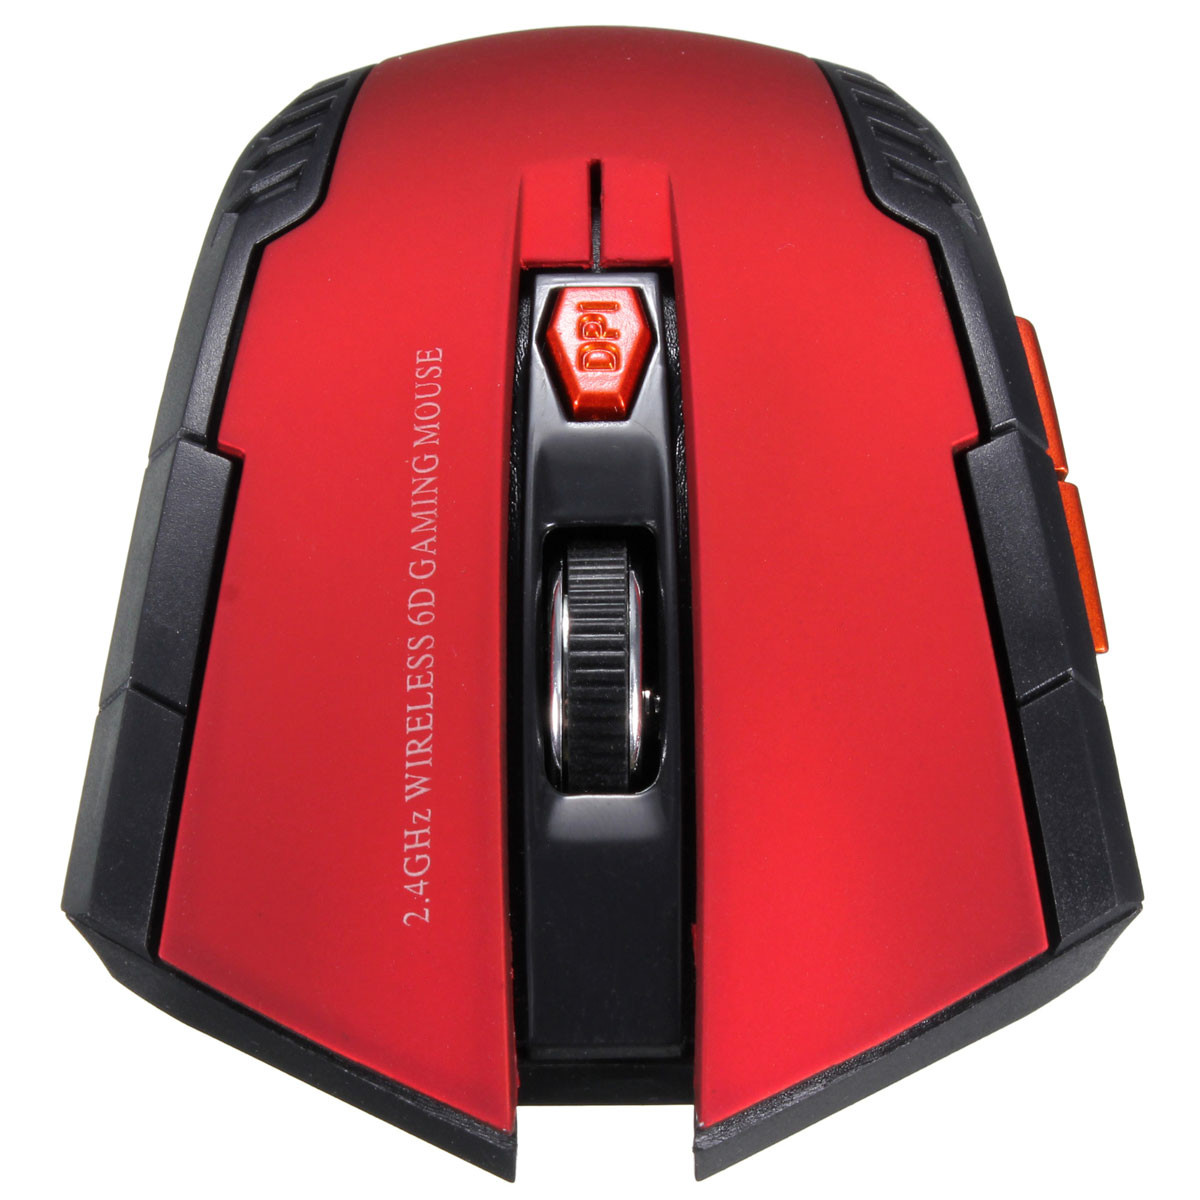 2 4ghz mini portable wireless optical gaming mouse mice for pc laptop red lazada malaysia. Black Bedroom Furniture Sets. Home Design Ideas